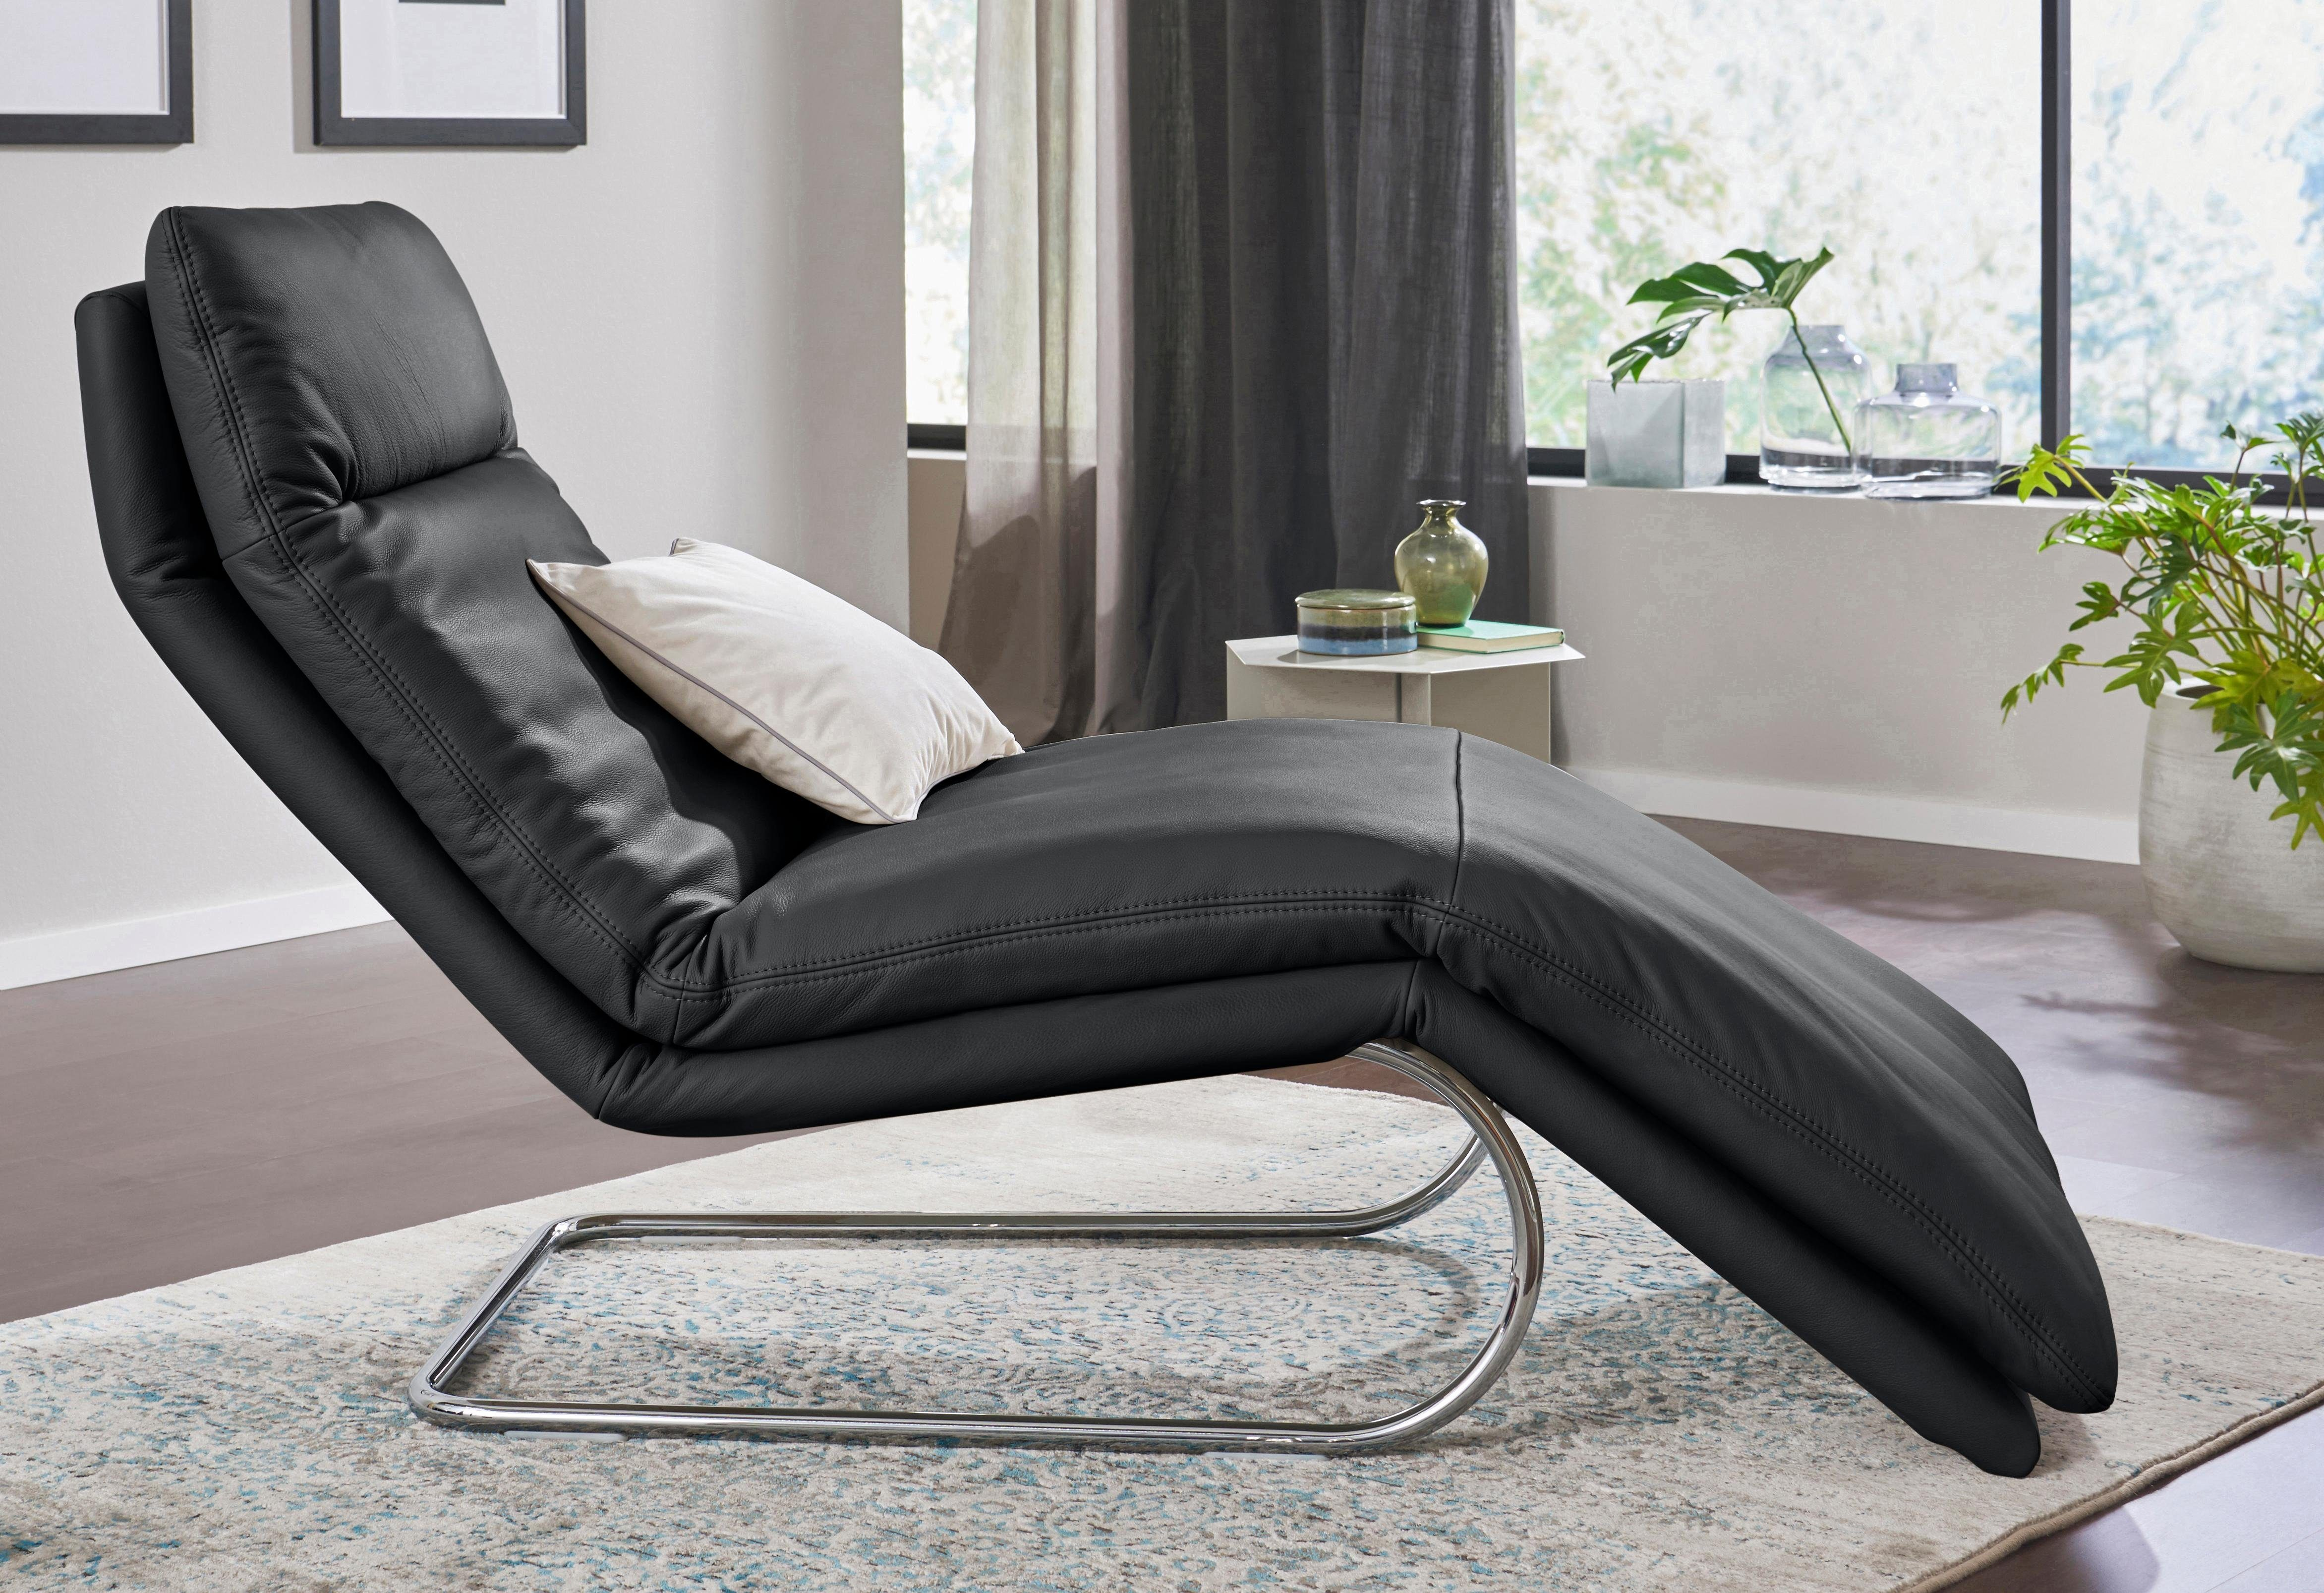 tantra chair ebay game with speakers at walmart relax liegesessel. sessel hocker ruhesessel tvsessel stuhl relaxstuhl liege mit ...